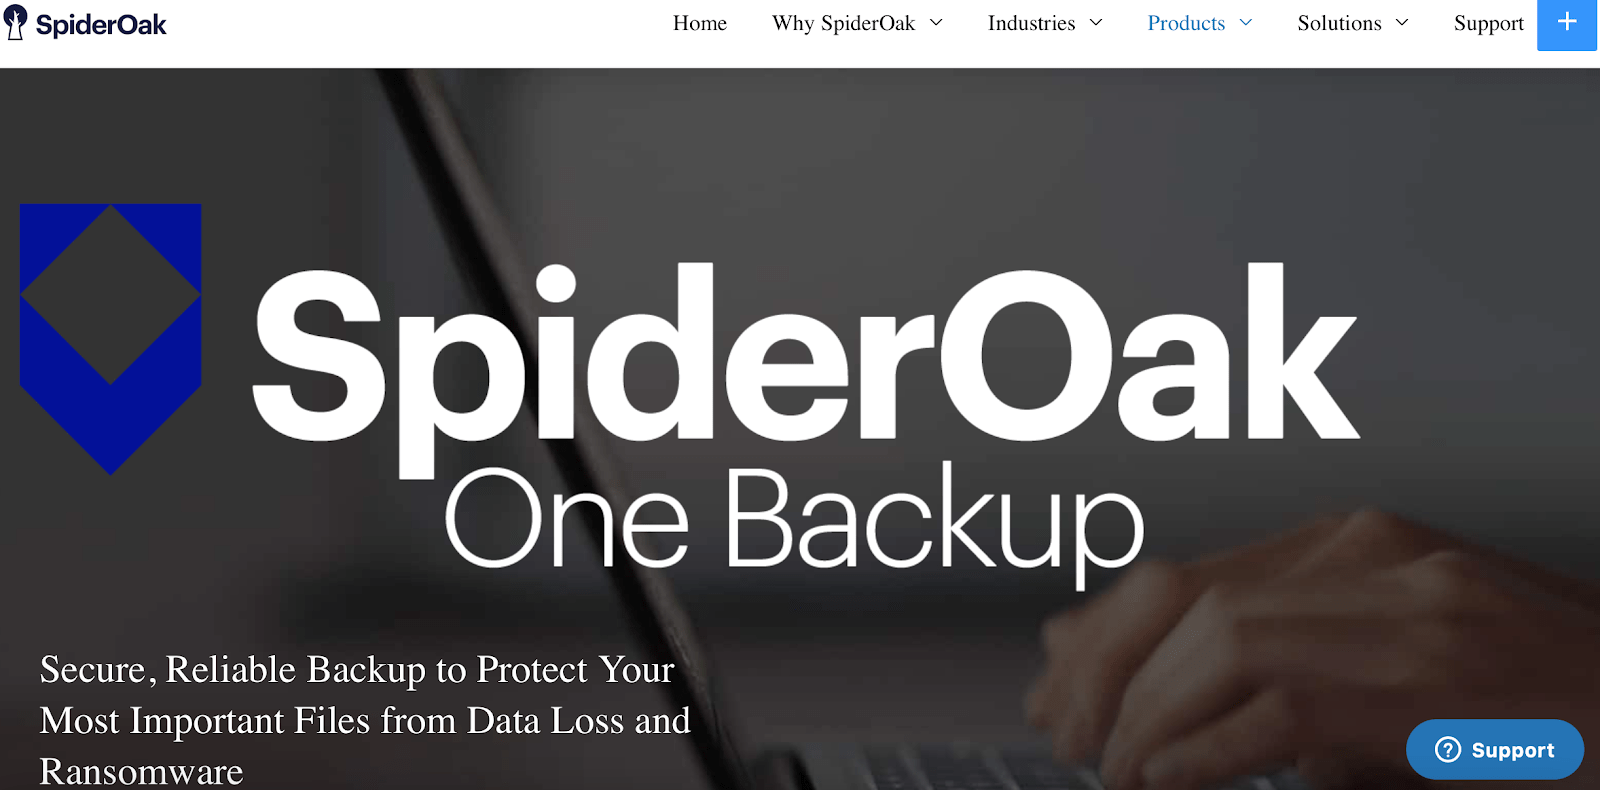 SpiderOak One home page